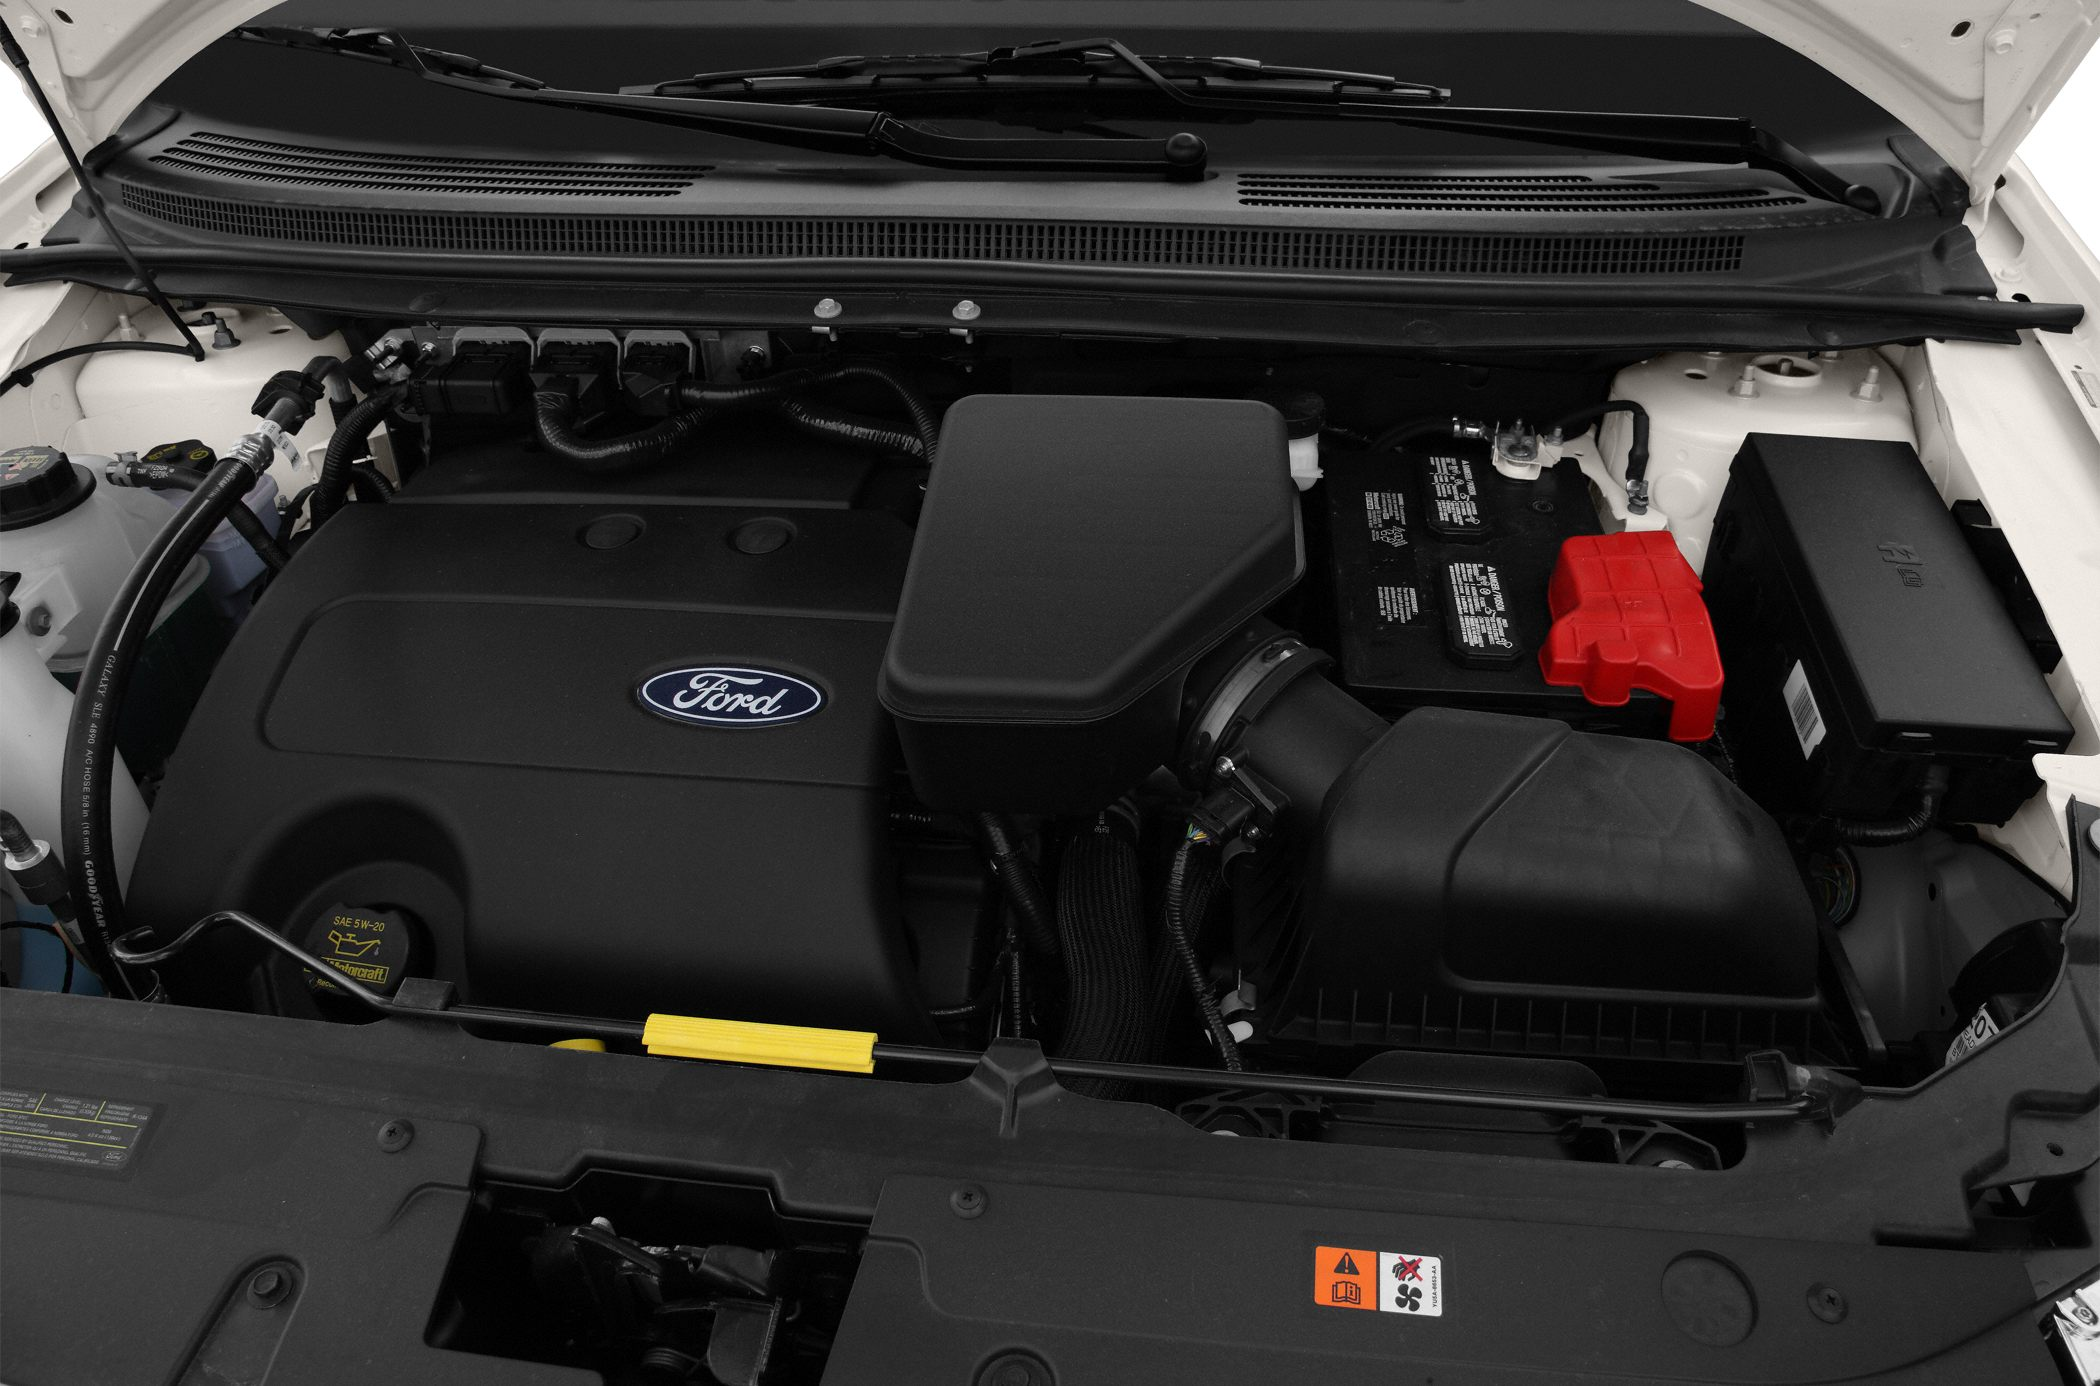 2007 Ford Edge Engine Details And Diagrams Schematic Honda Ridgeline Diagram Used 2011 Limited Inventory Vehicle At Gillespie